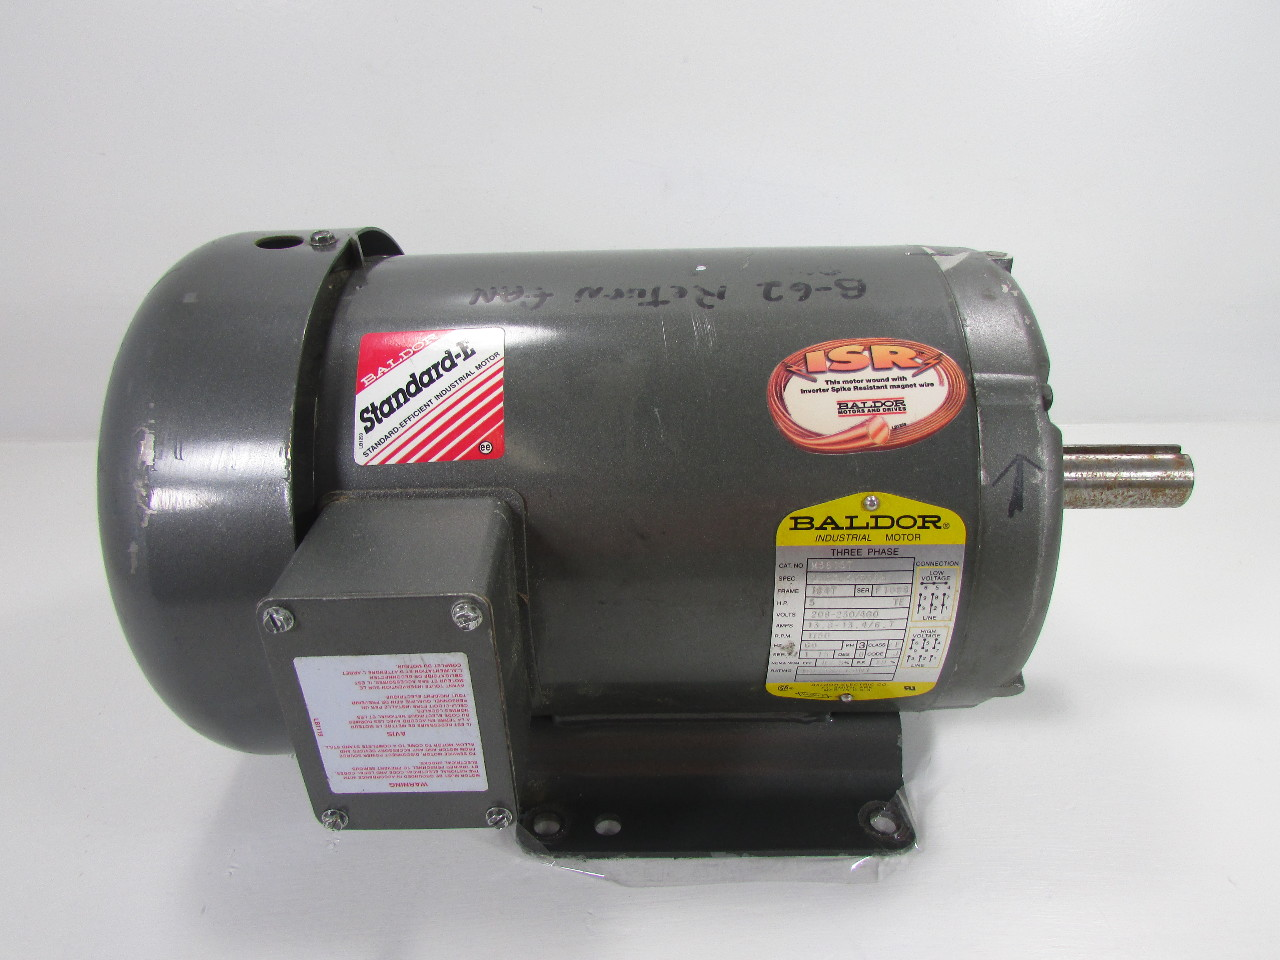 Baldor m3615t 5 hp 1750 rpm electric motor 3 phase 230 Electric motor solutions